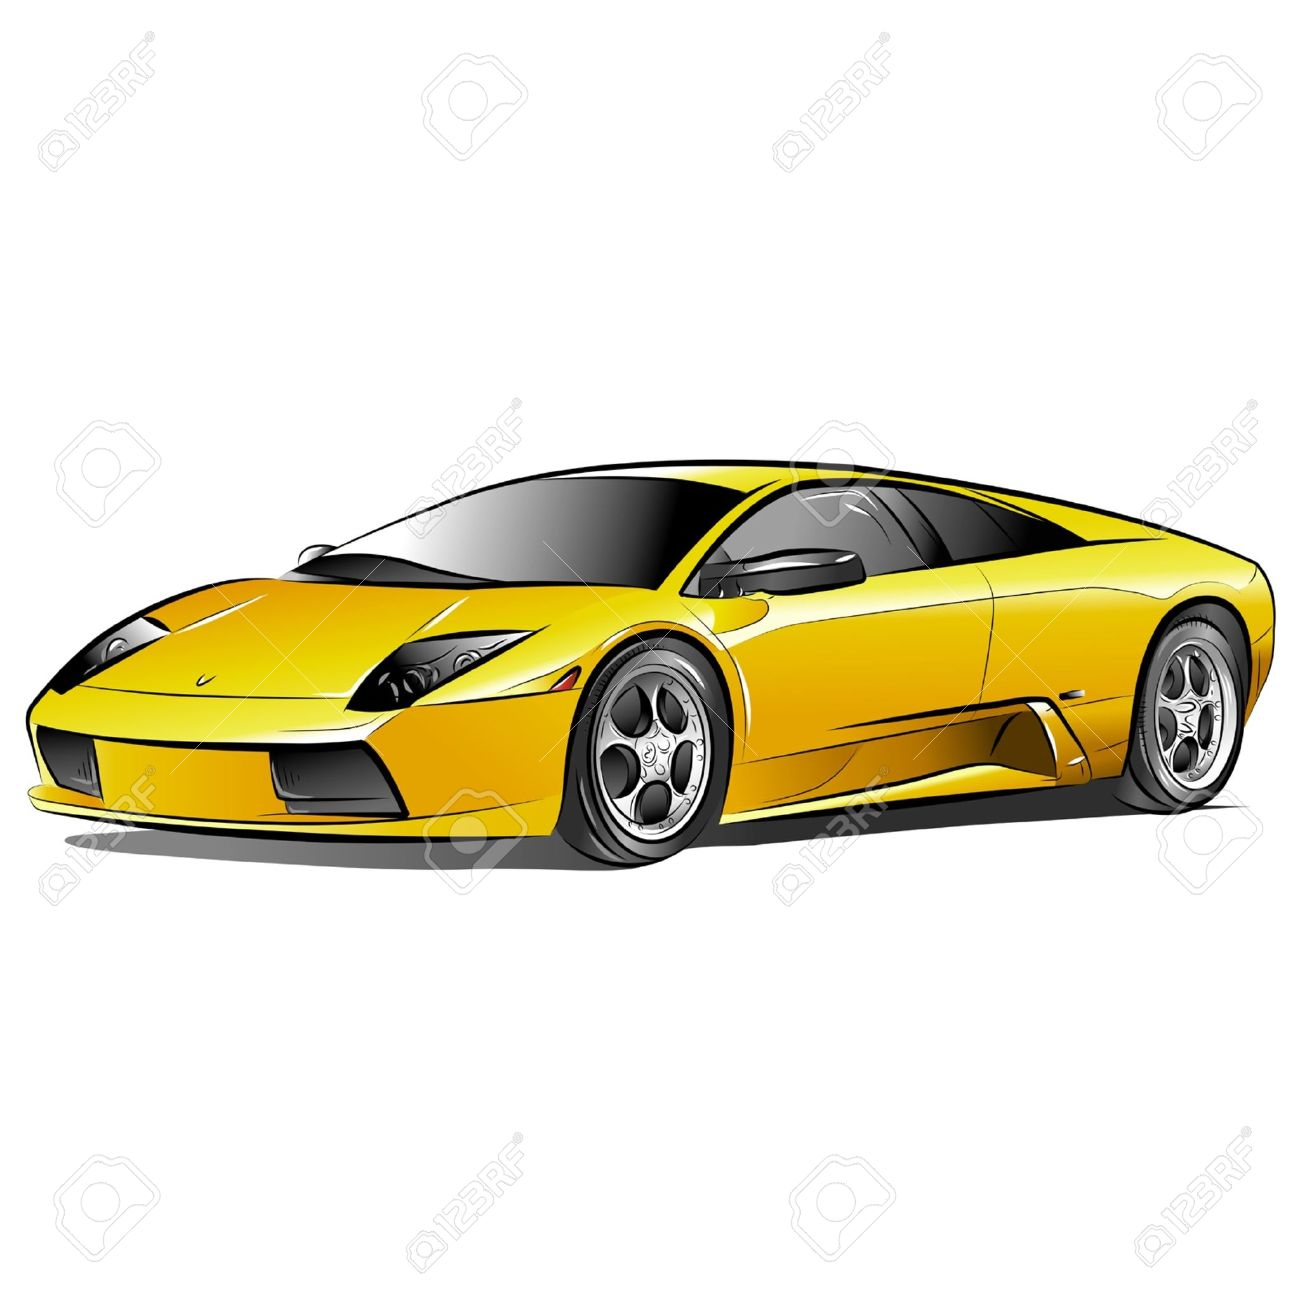 Expensive Car Clipart.